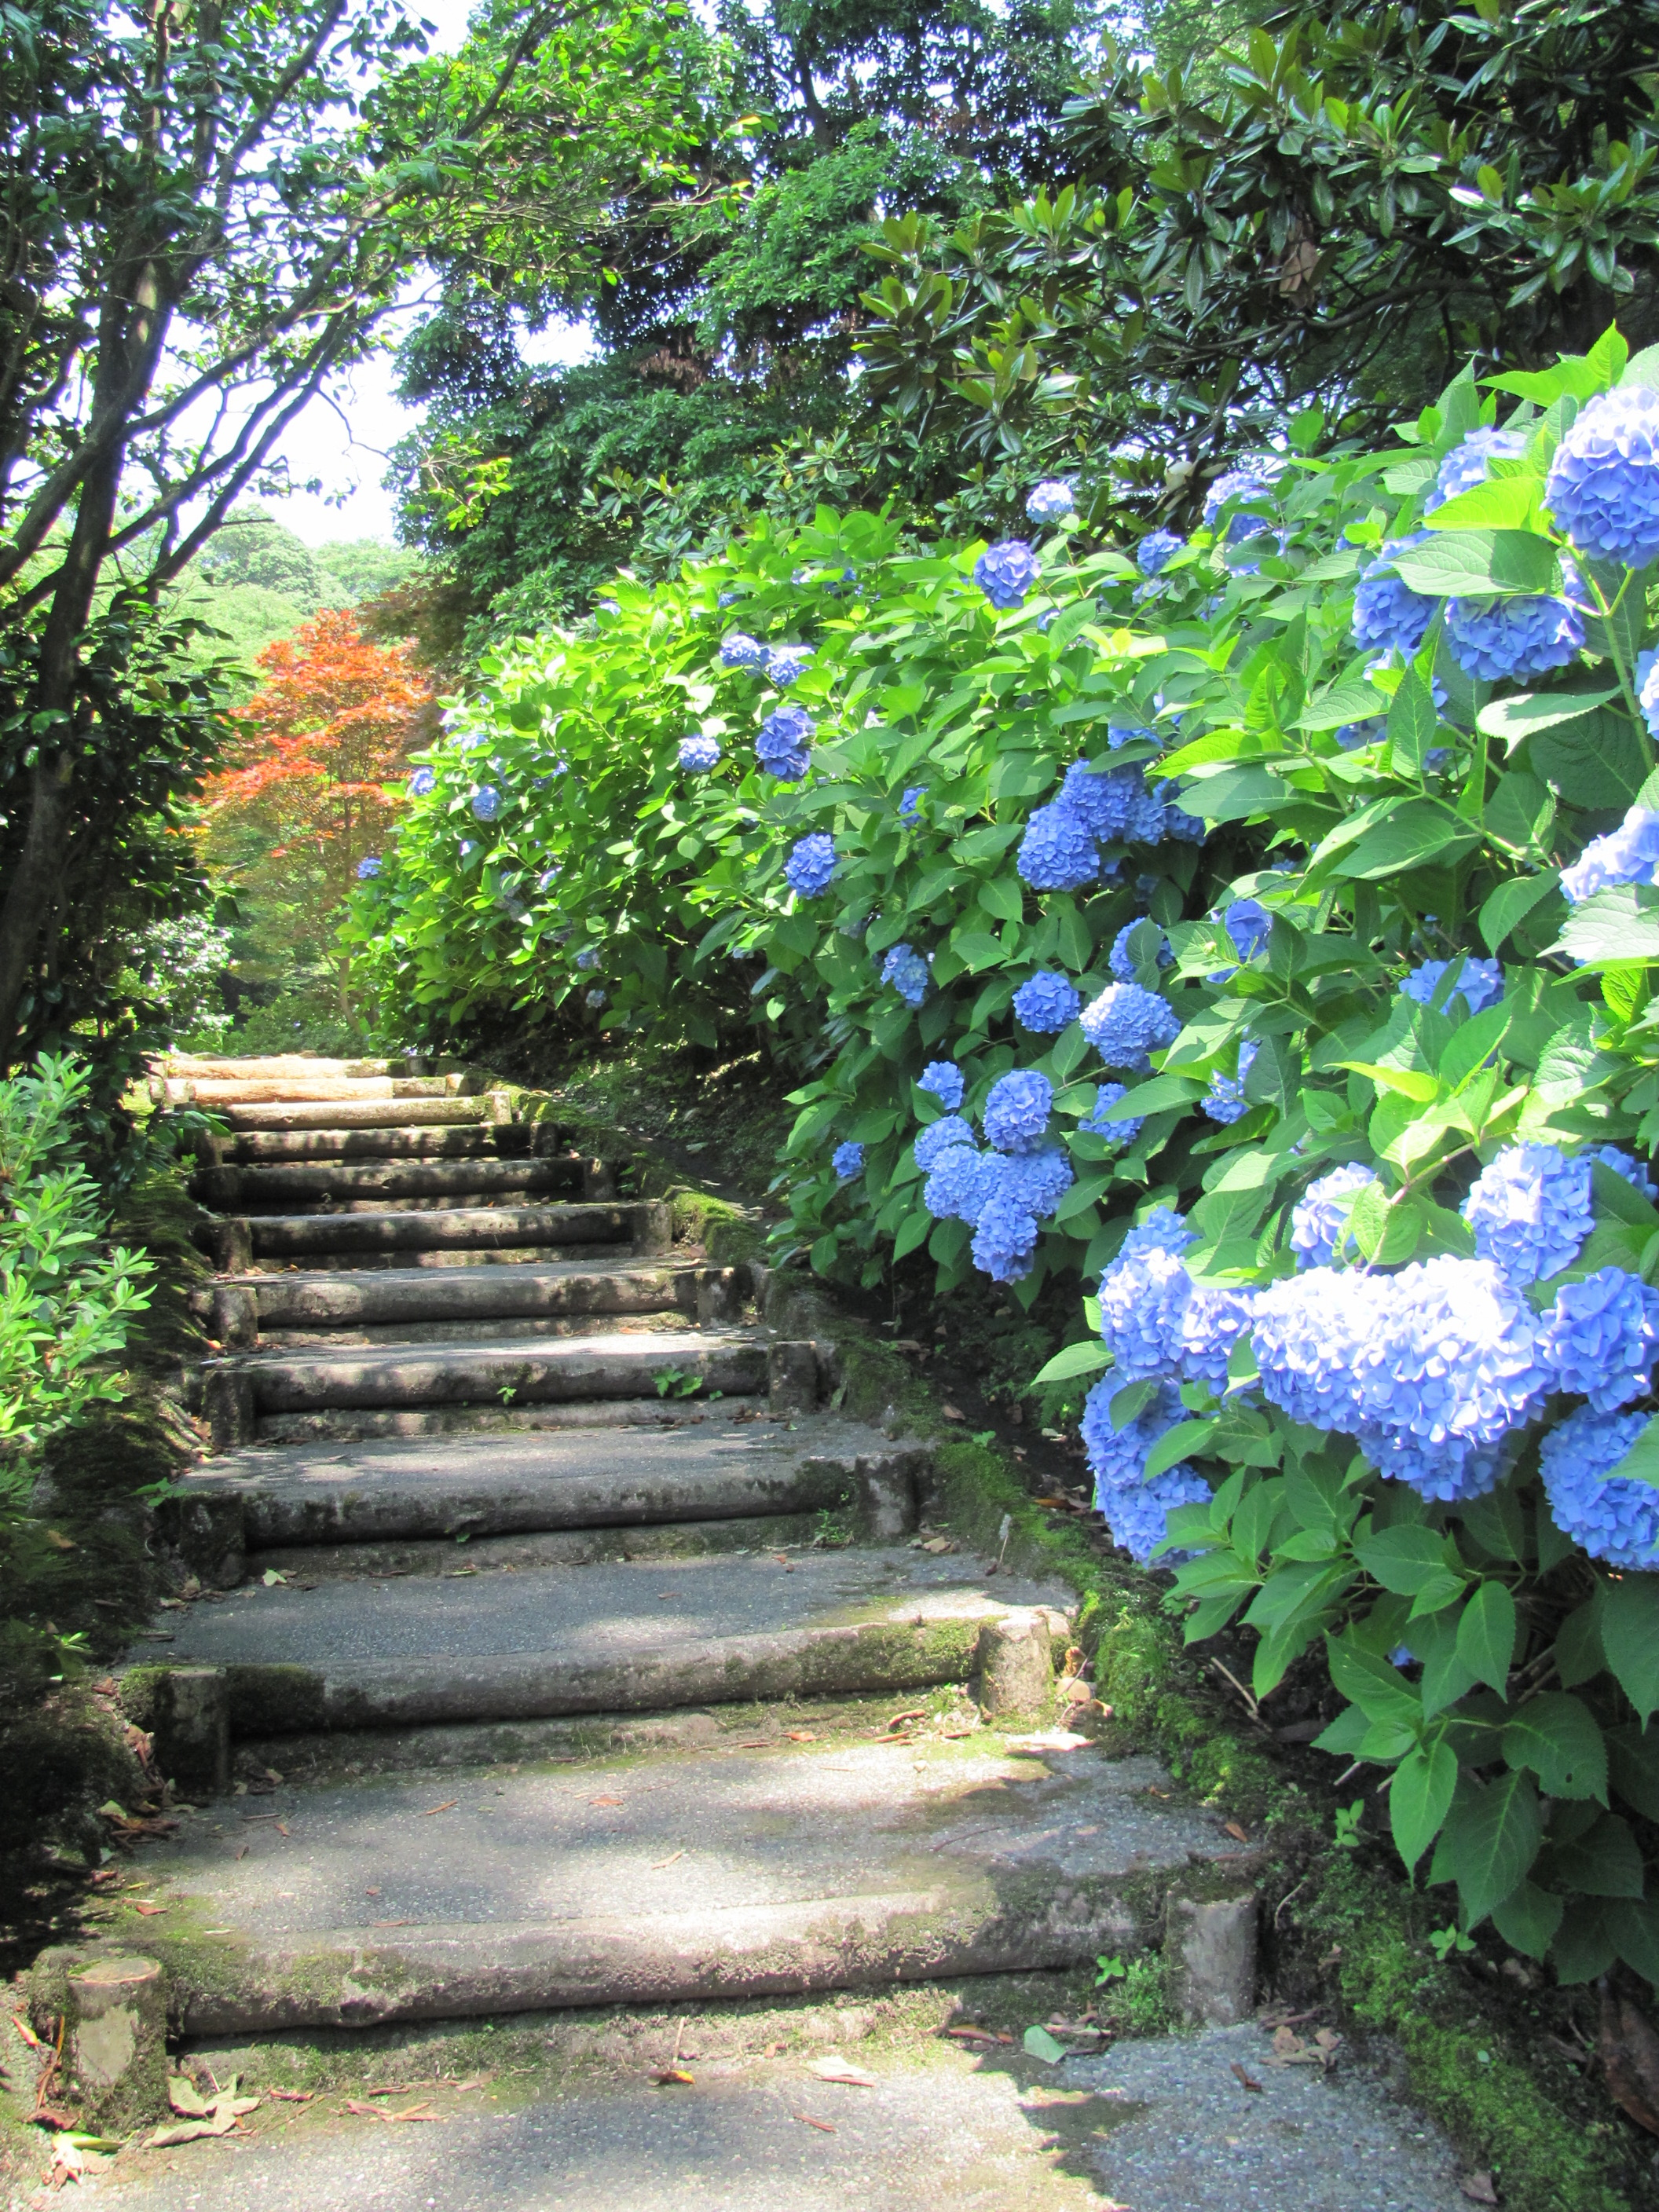 In Search of Kanazawas Hydrangeas Utatsuyama Iris Garden The